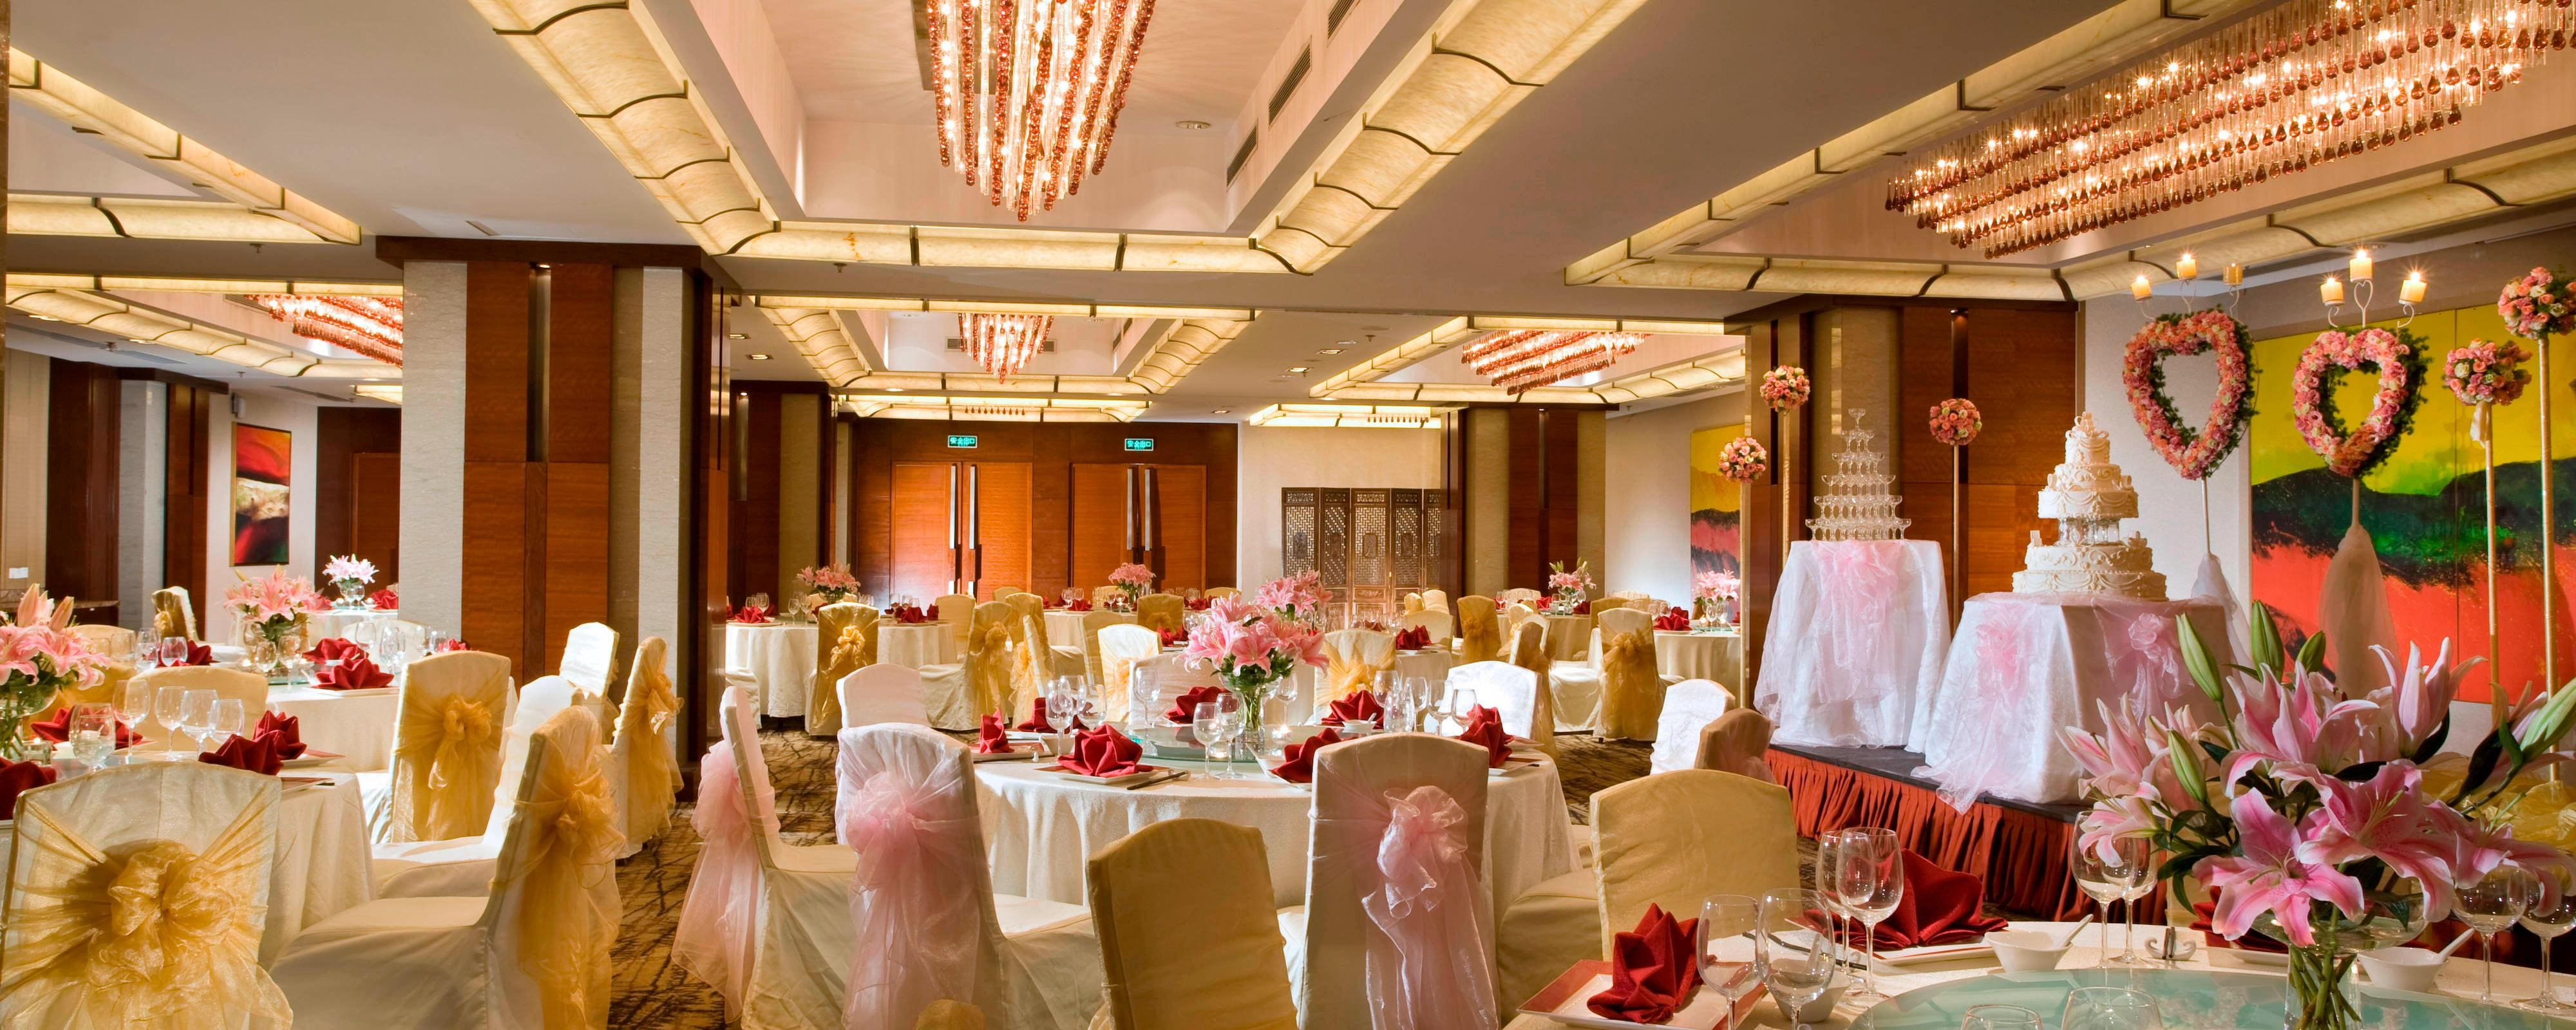 Four Points Grand Ballroom - Wedding Reception